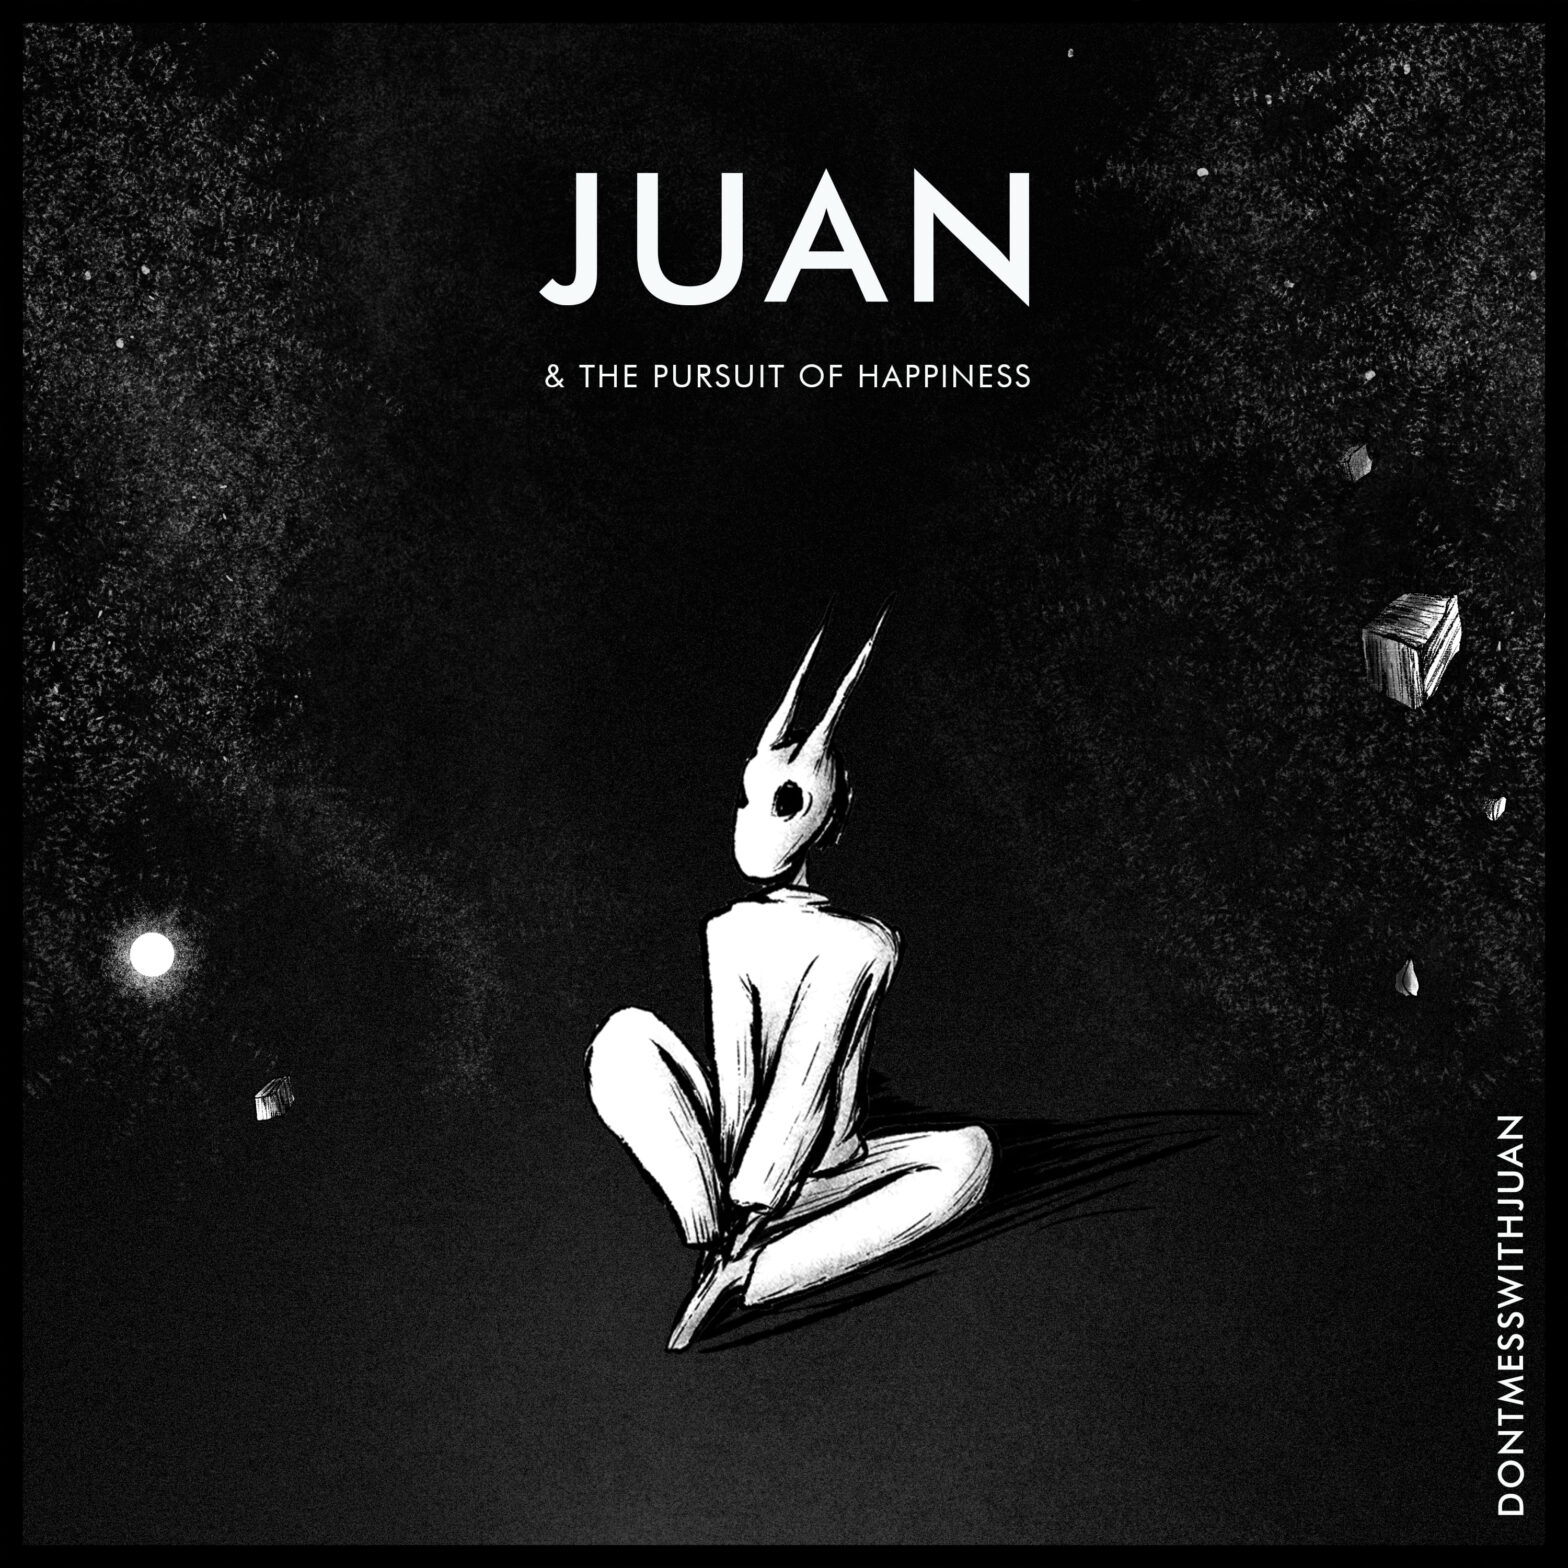 Dontmesswithjuan - Juan & the pursuit of Happiness (ALBUM)